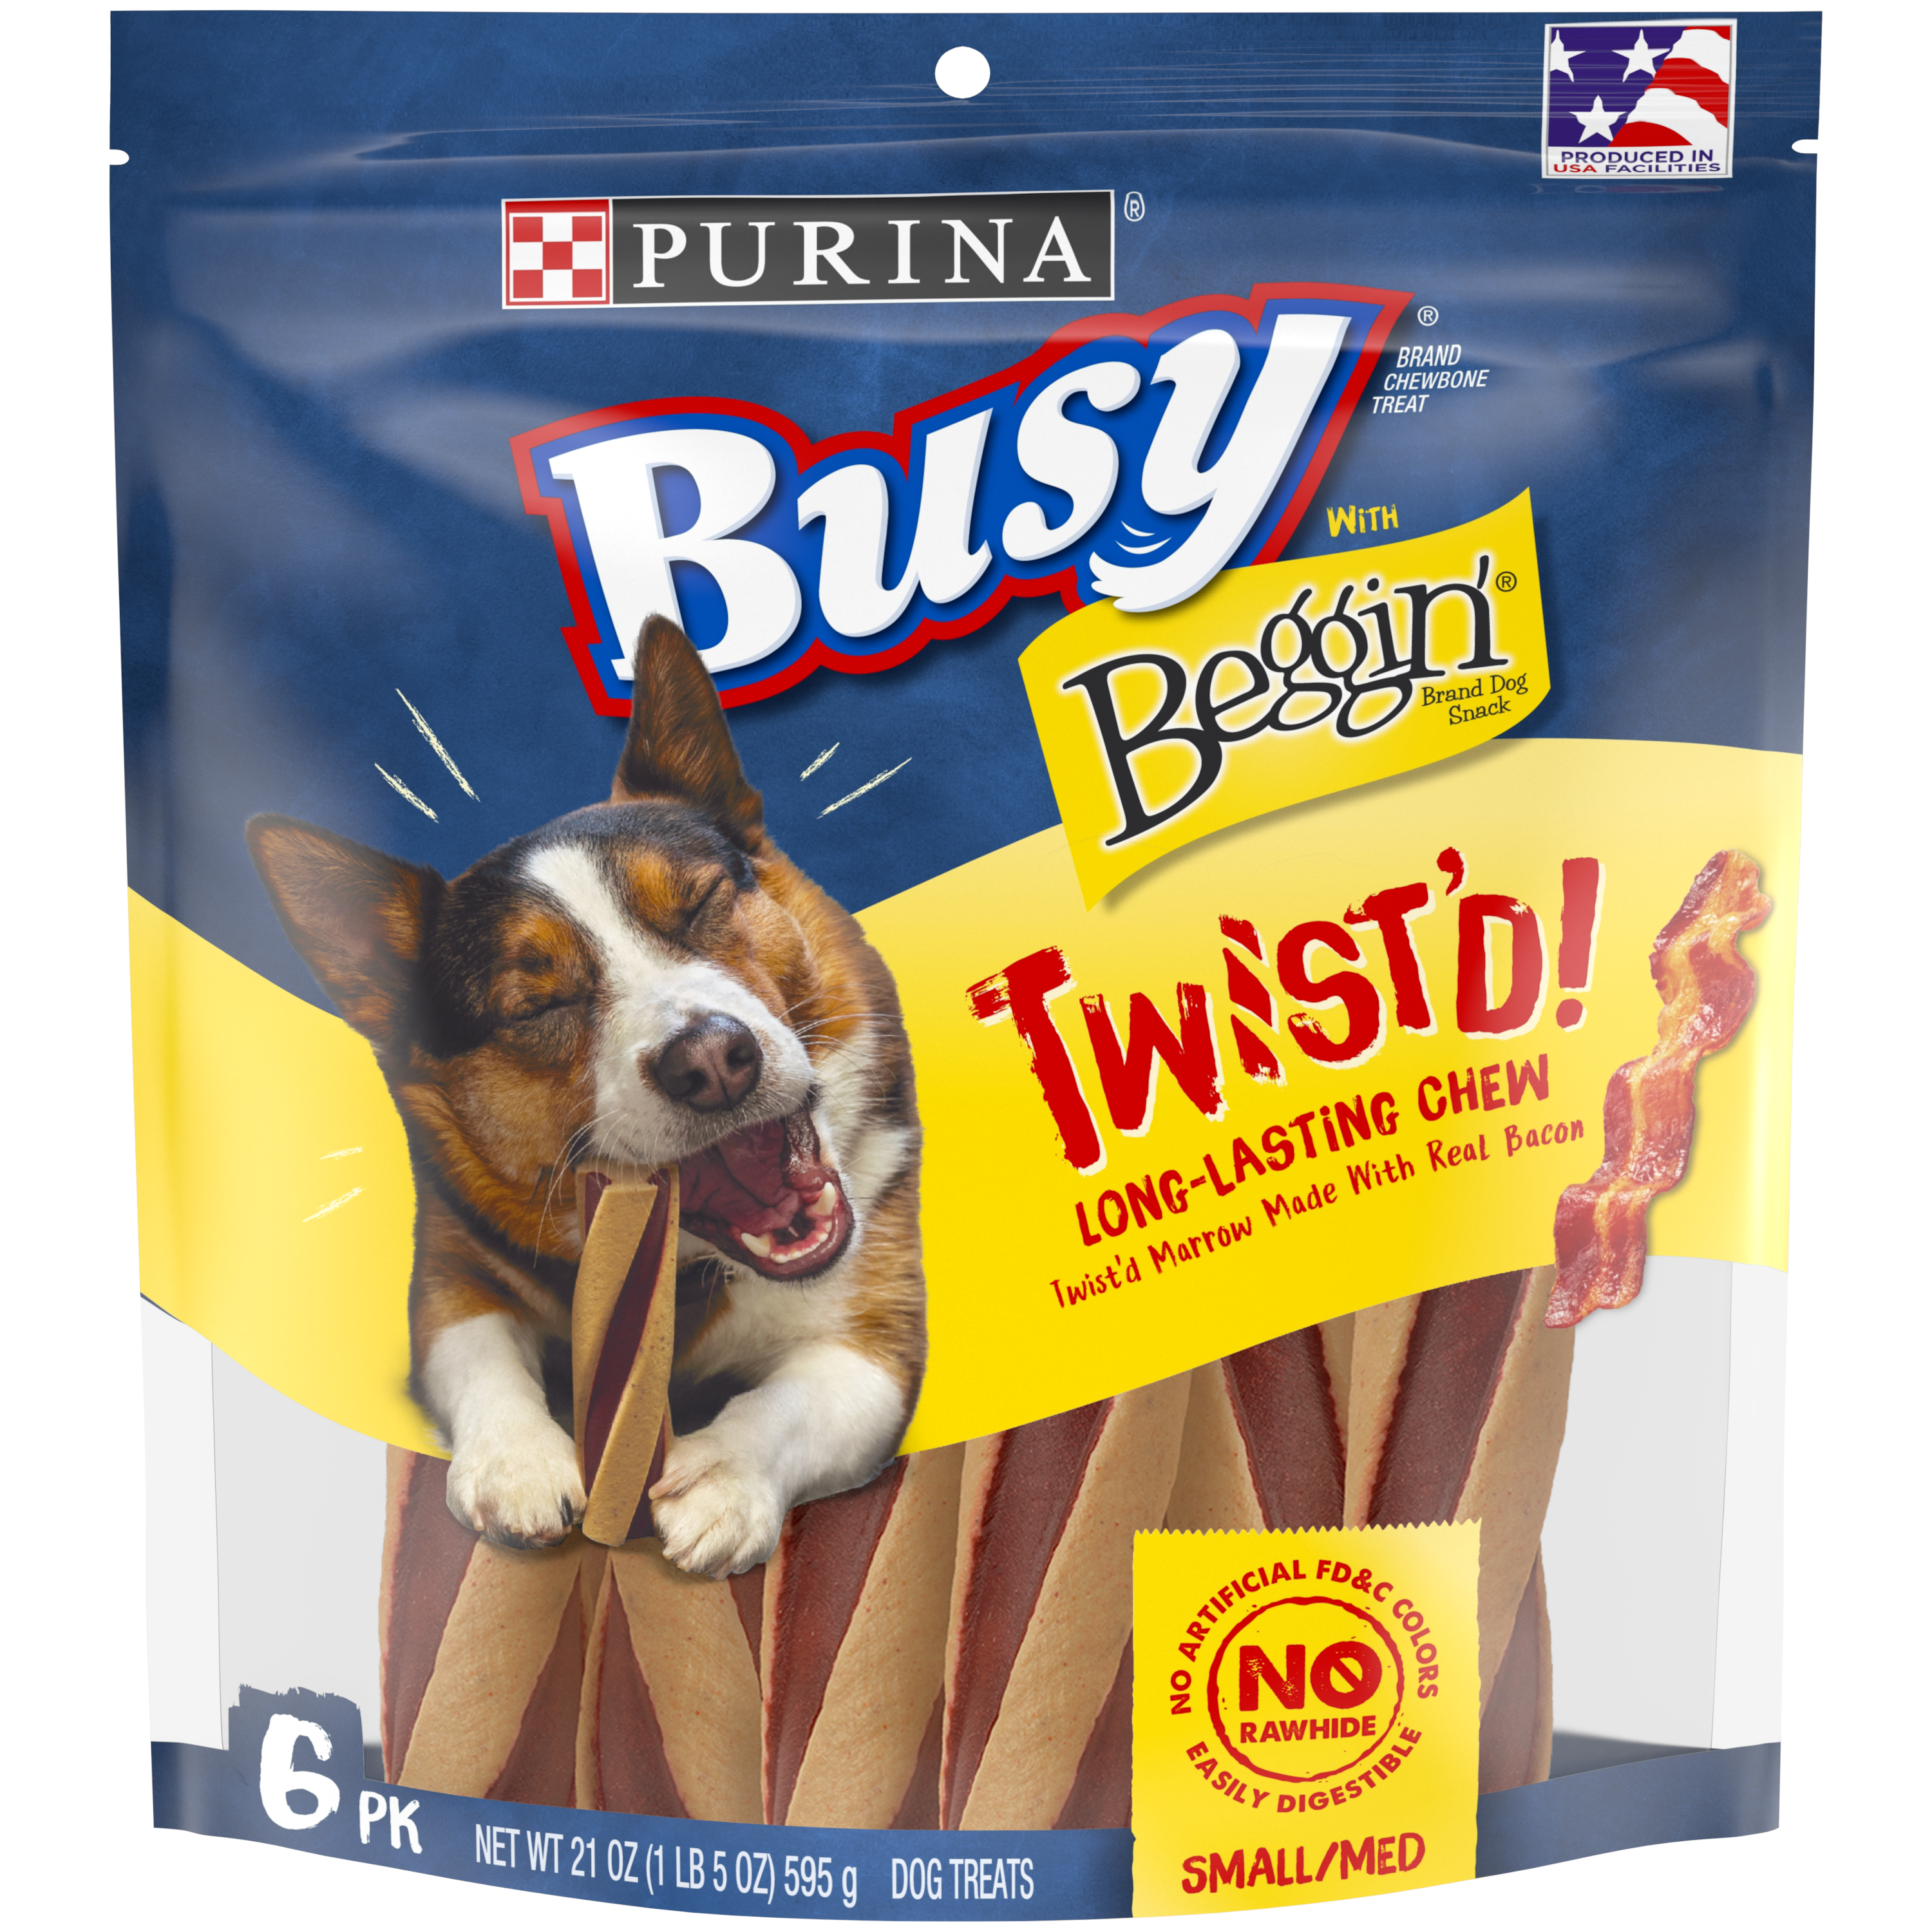 Purina Busy With Beggin' Small/Medium Breed Dog Treats; Twist'd - 6 ct. Pouch